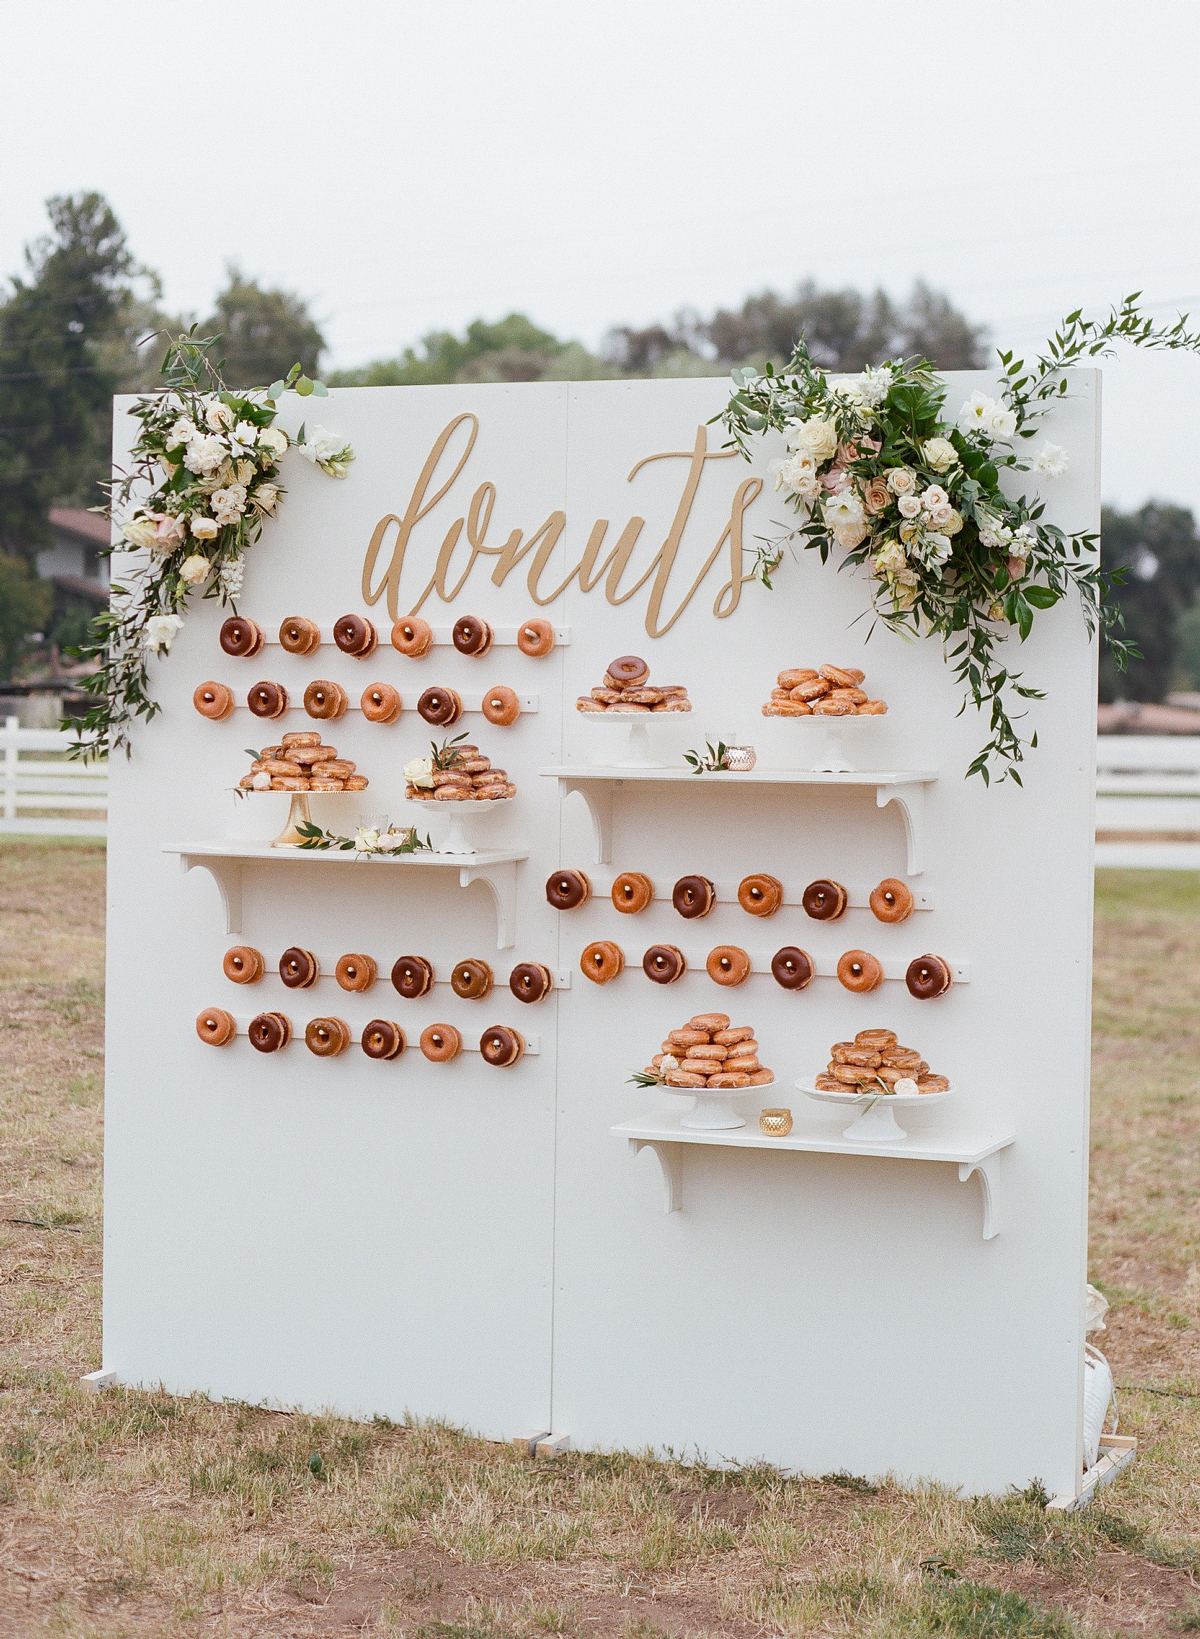 wedding donuts bryan miller